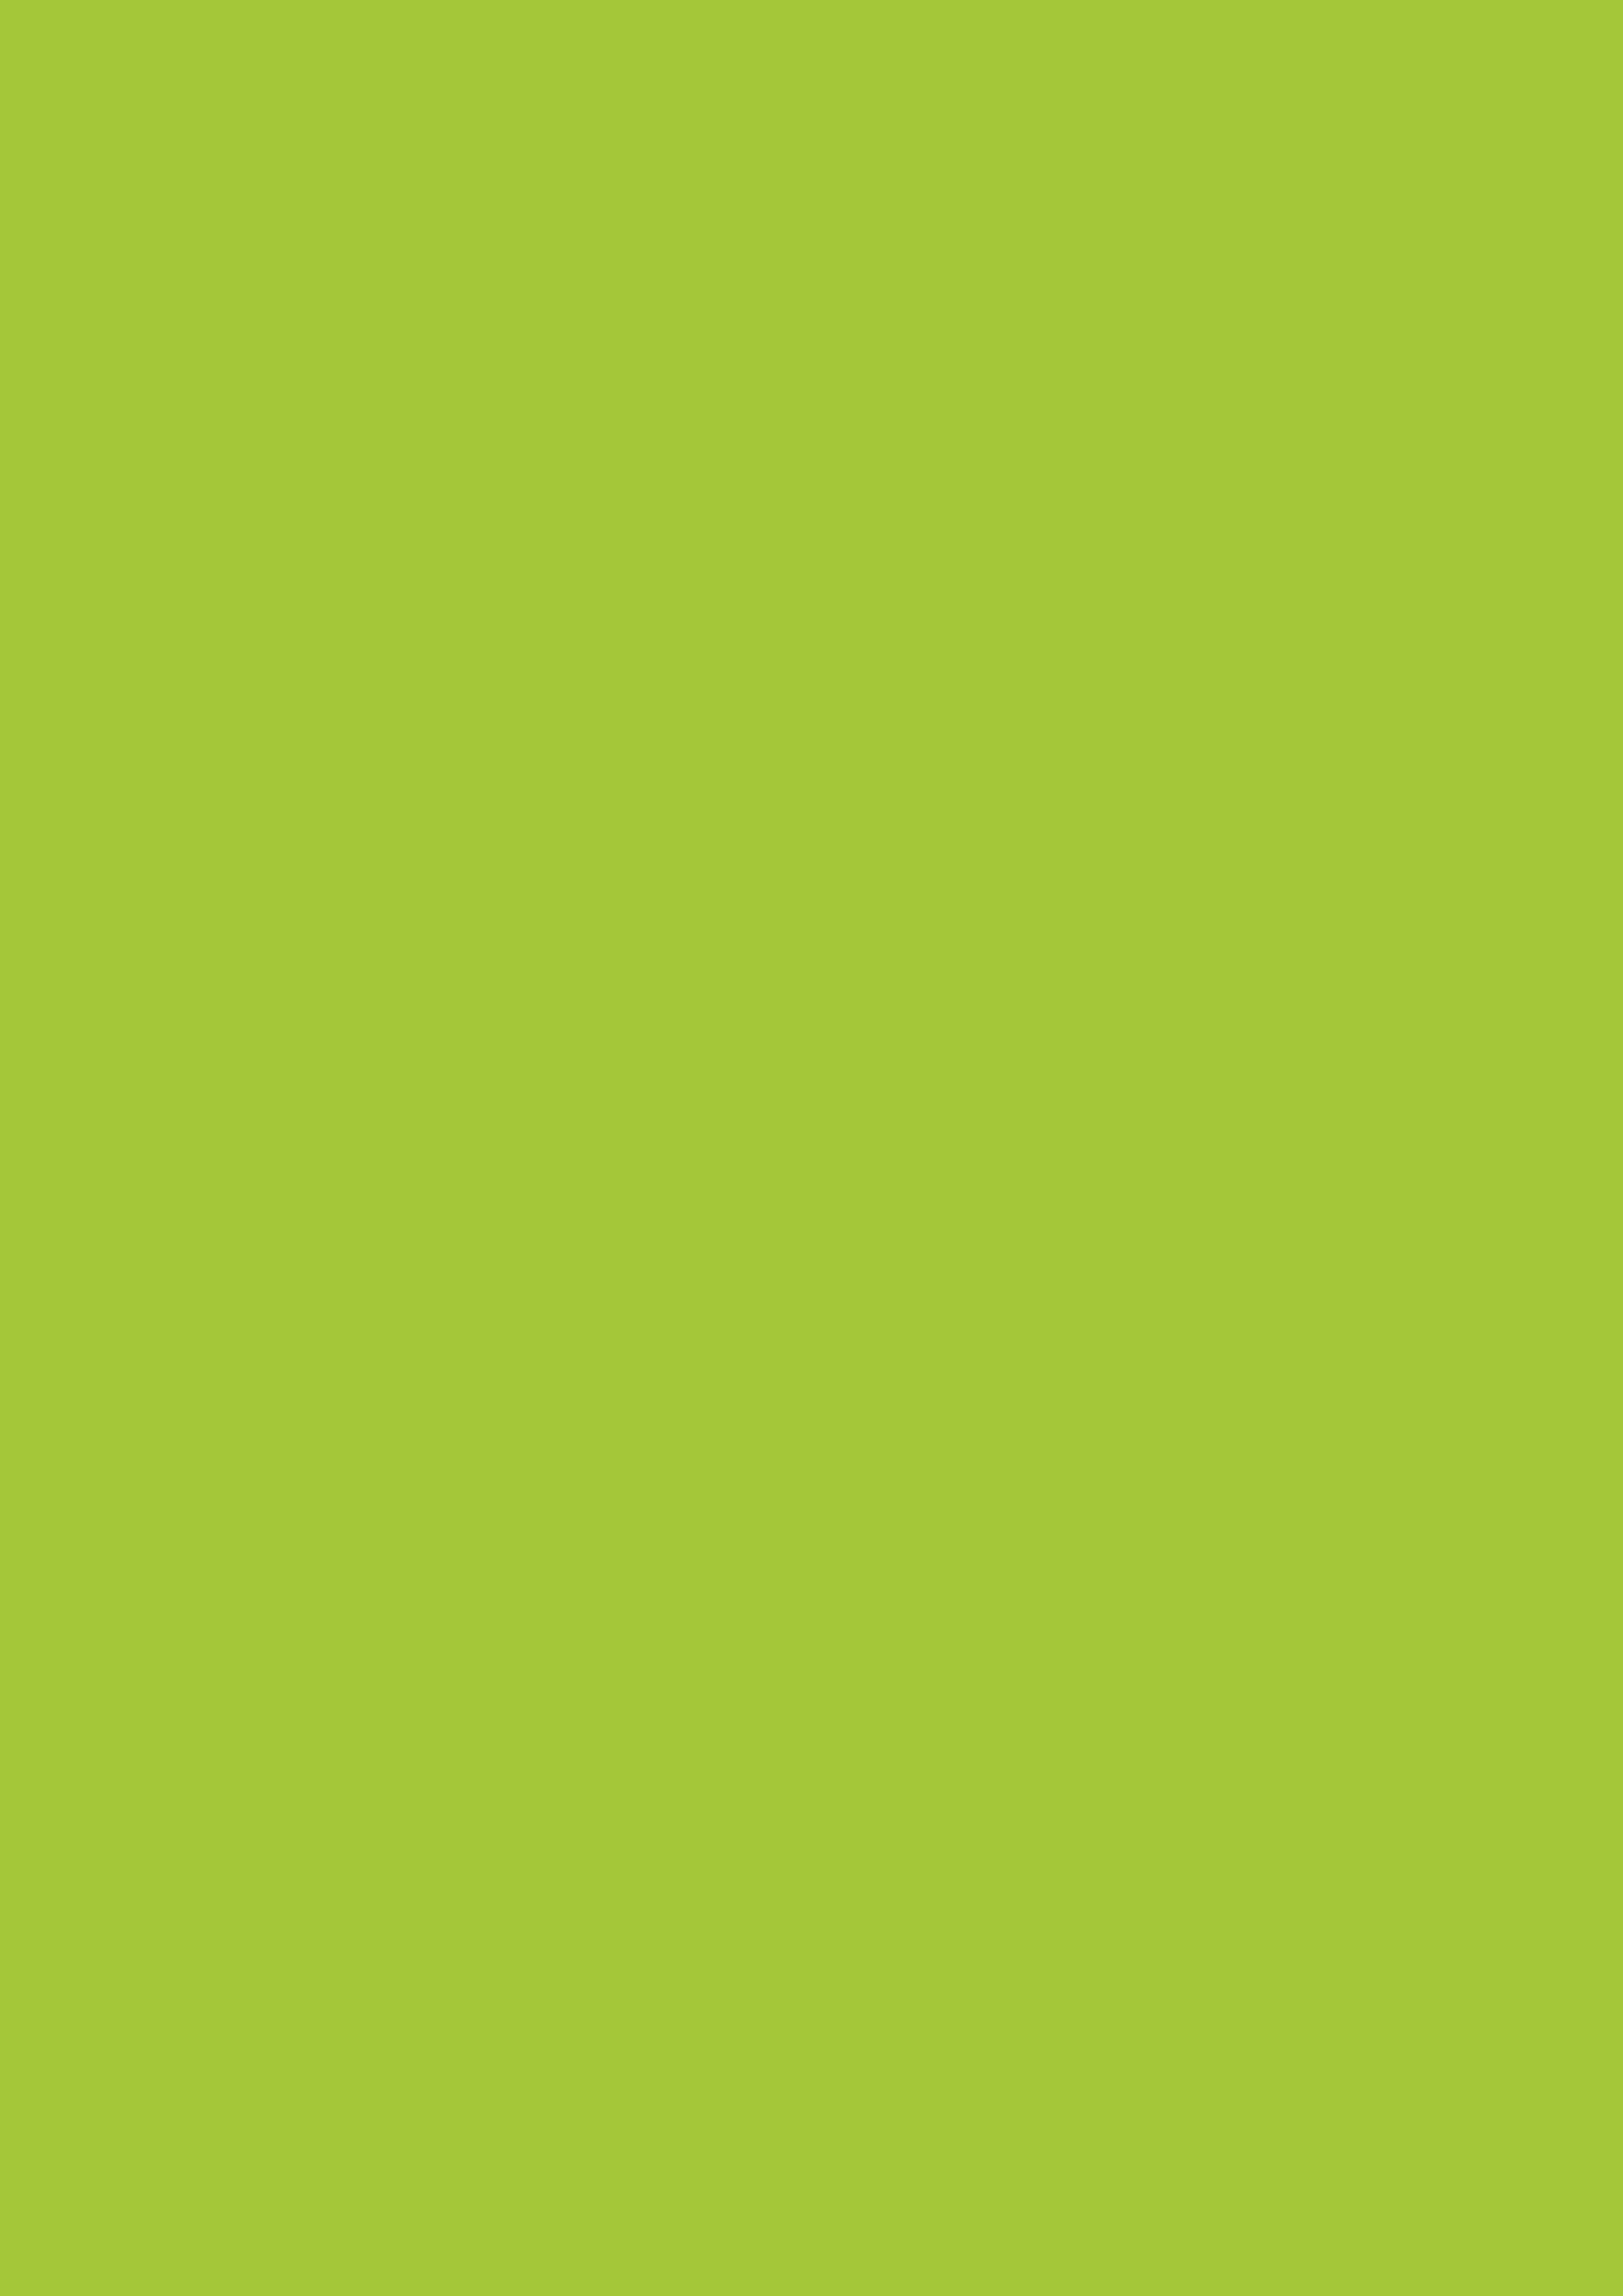 2480x3508 Android Green Solid Color Background